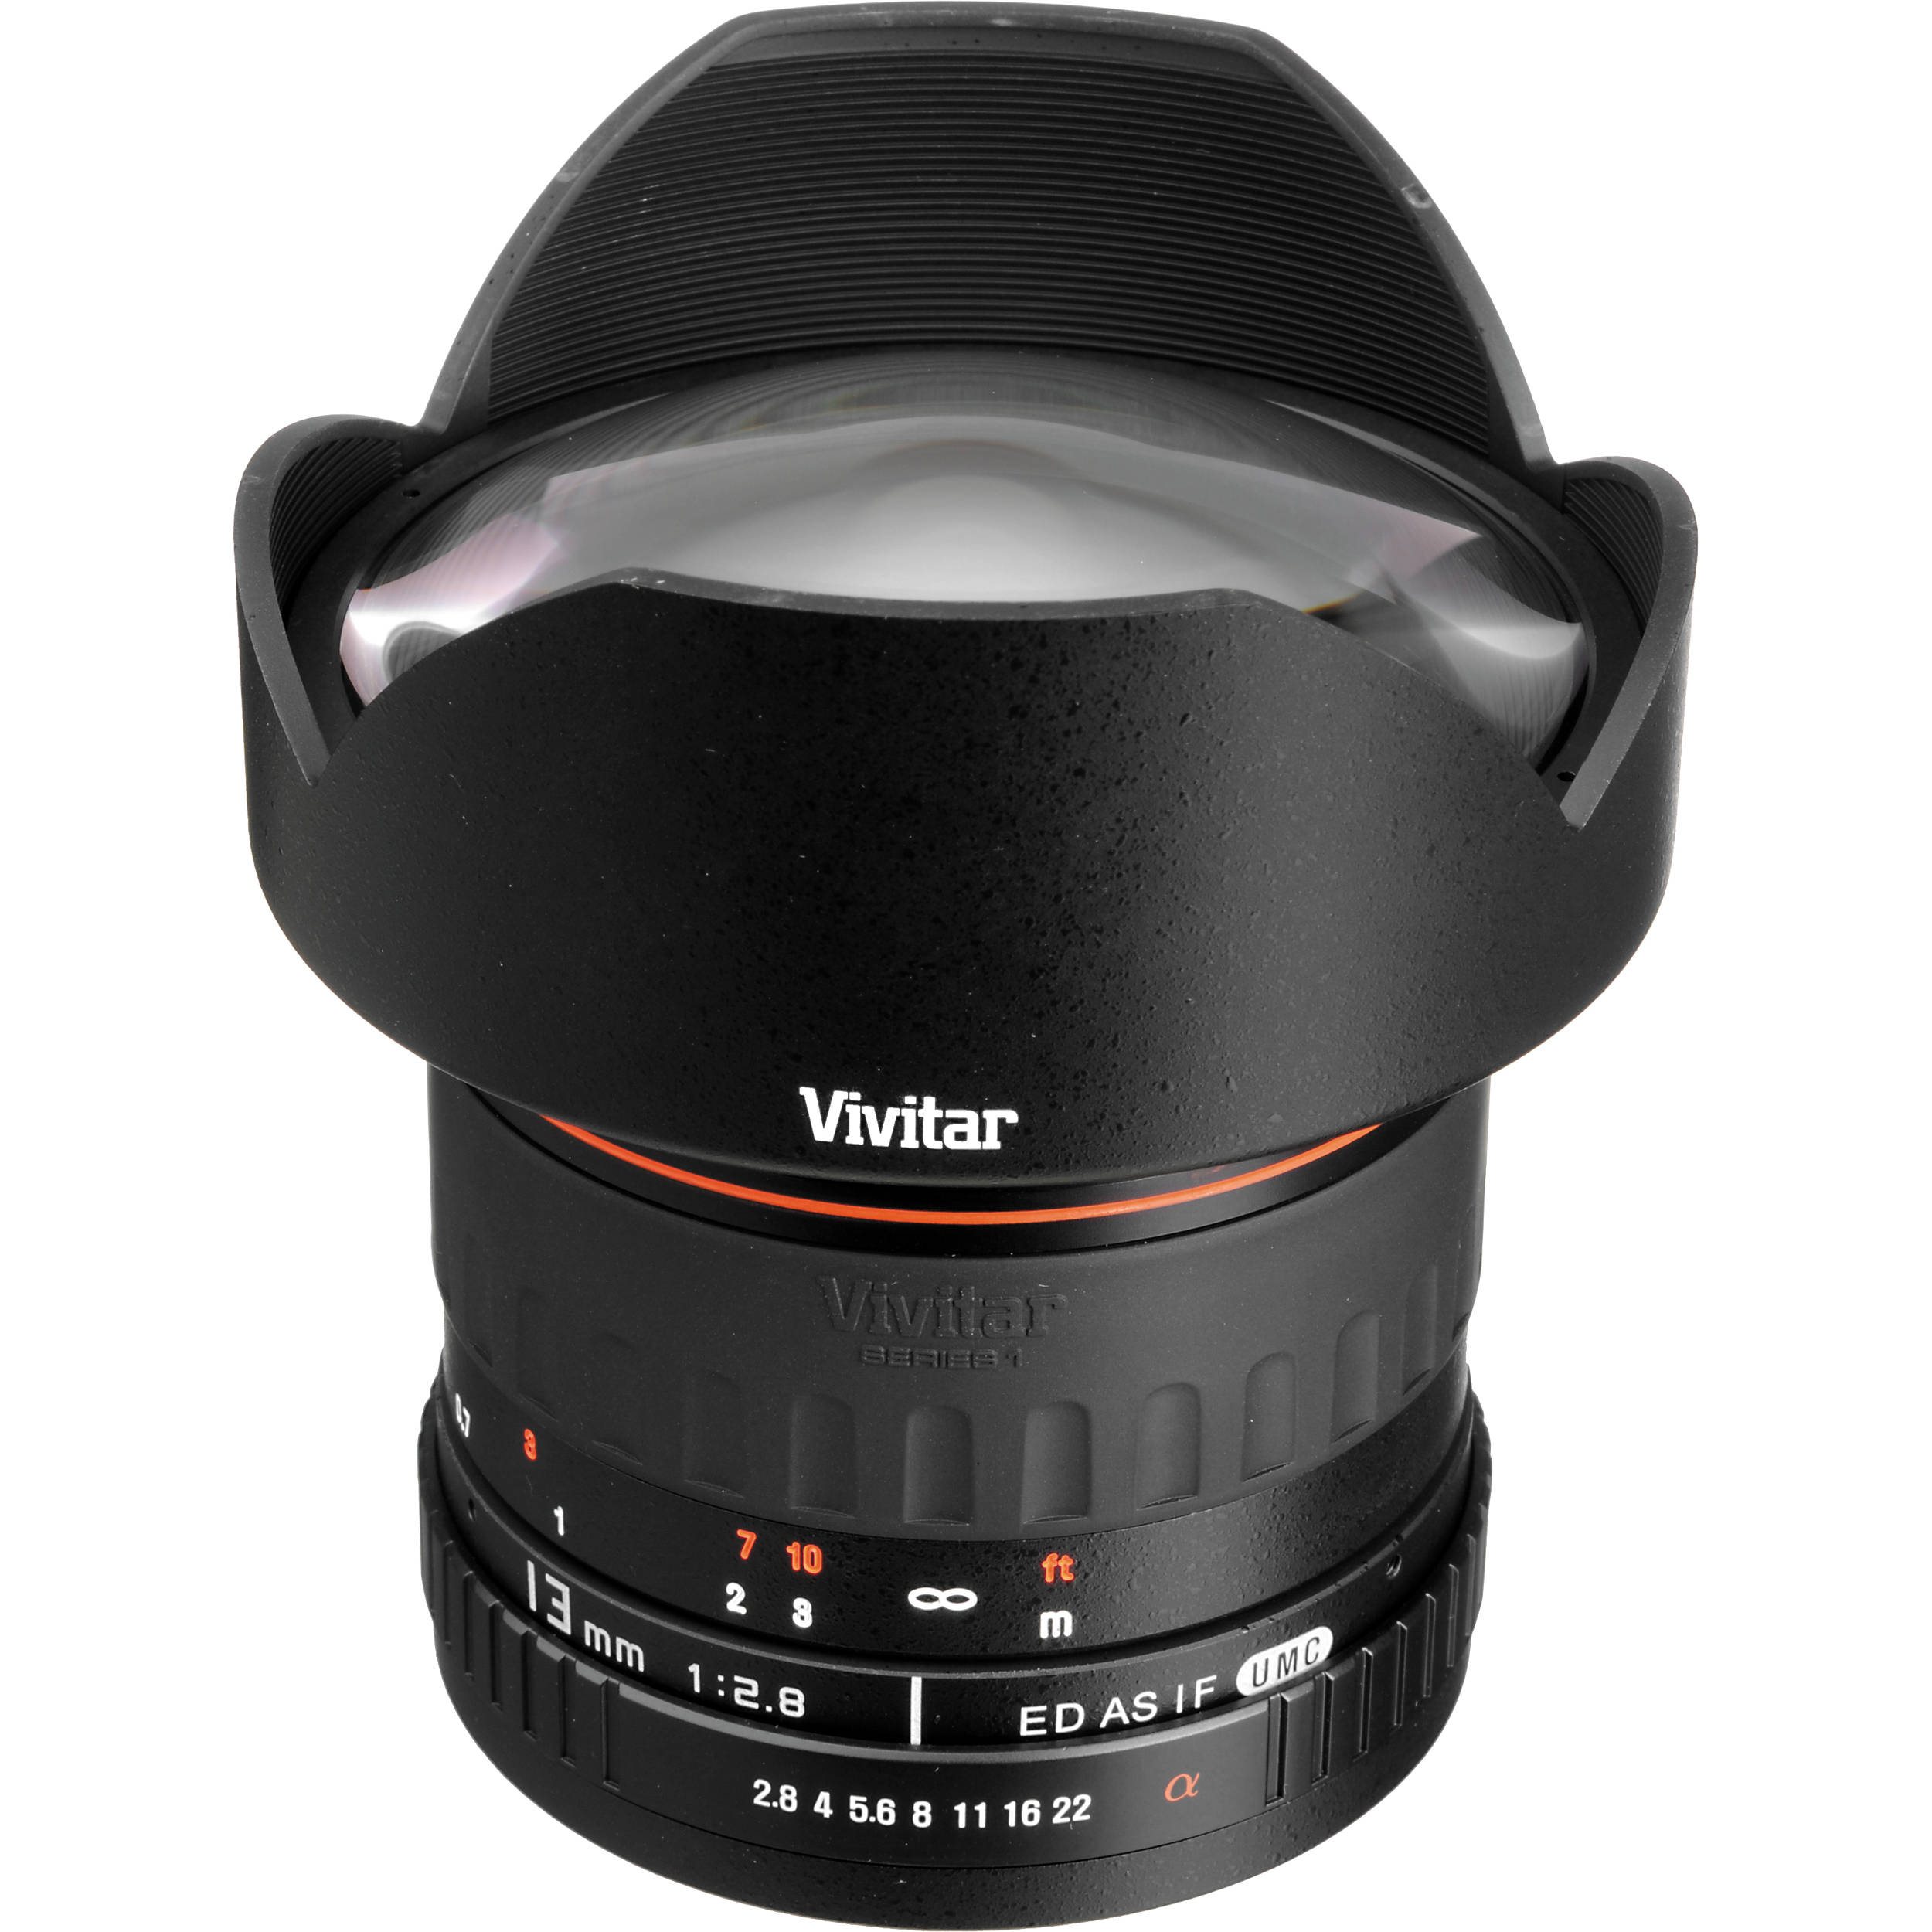 Vivitar ai 70-210mm f/3. 5 series 1 macro manual focus lens for.